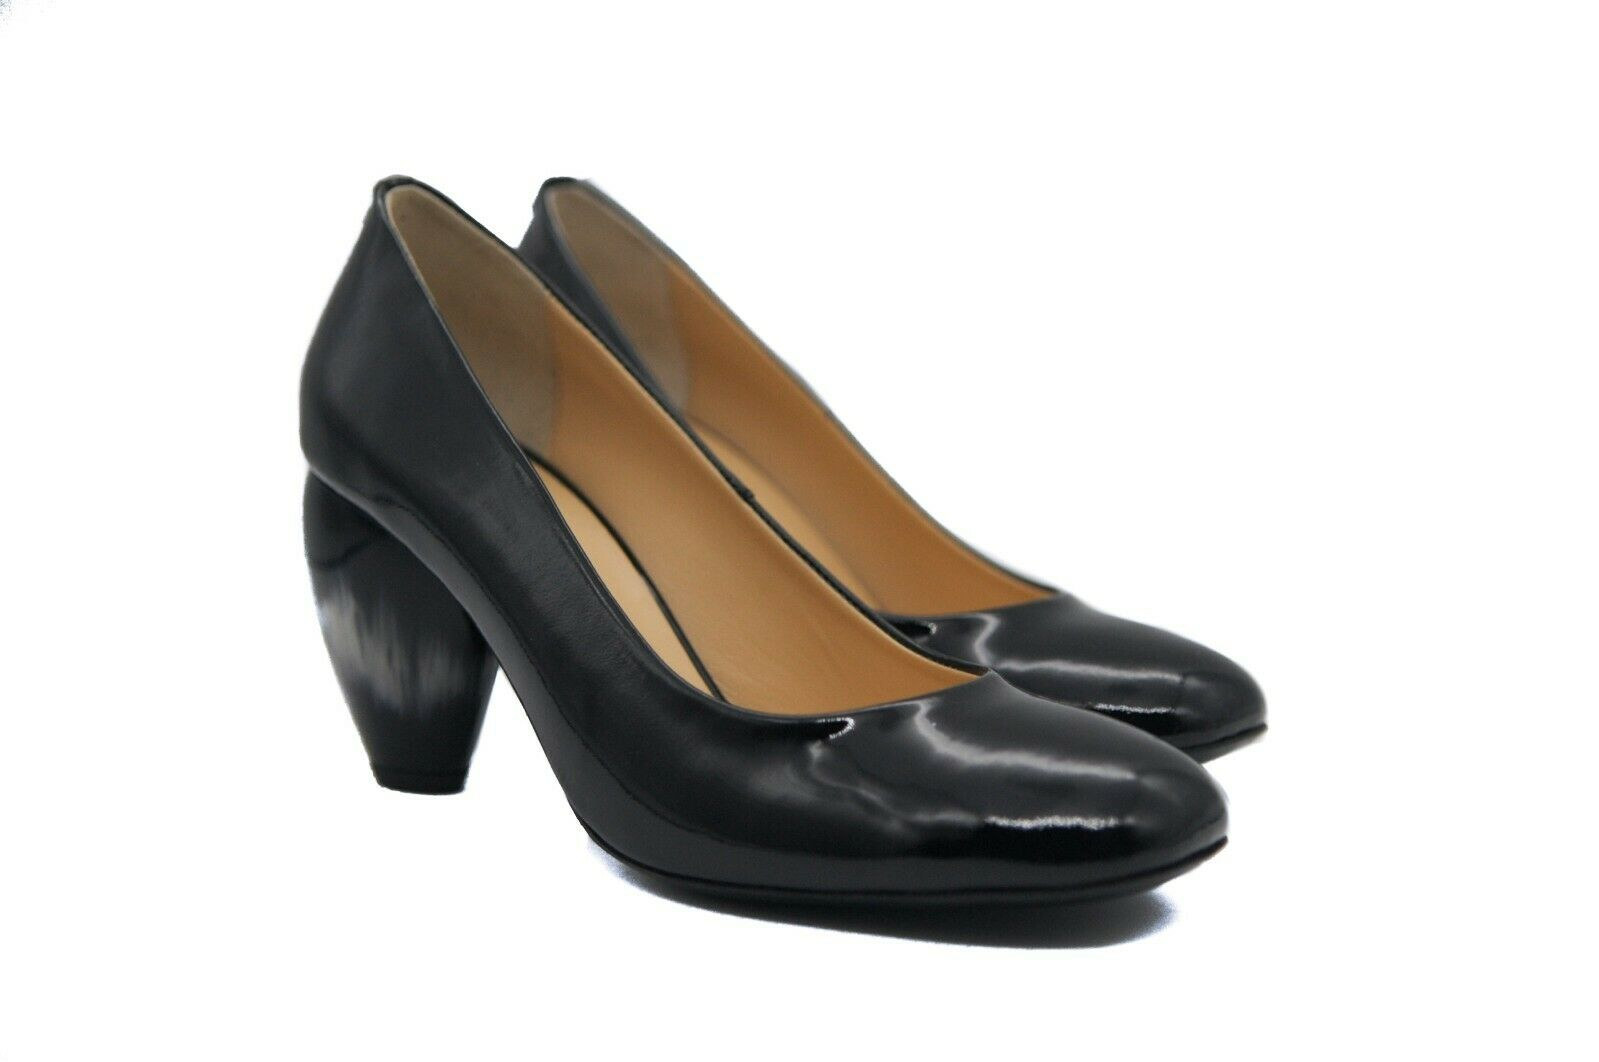 Goody2shoes Ladies Black Patent Court shoes with Unique Tulip Ball Heel UK Design